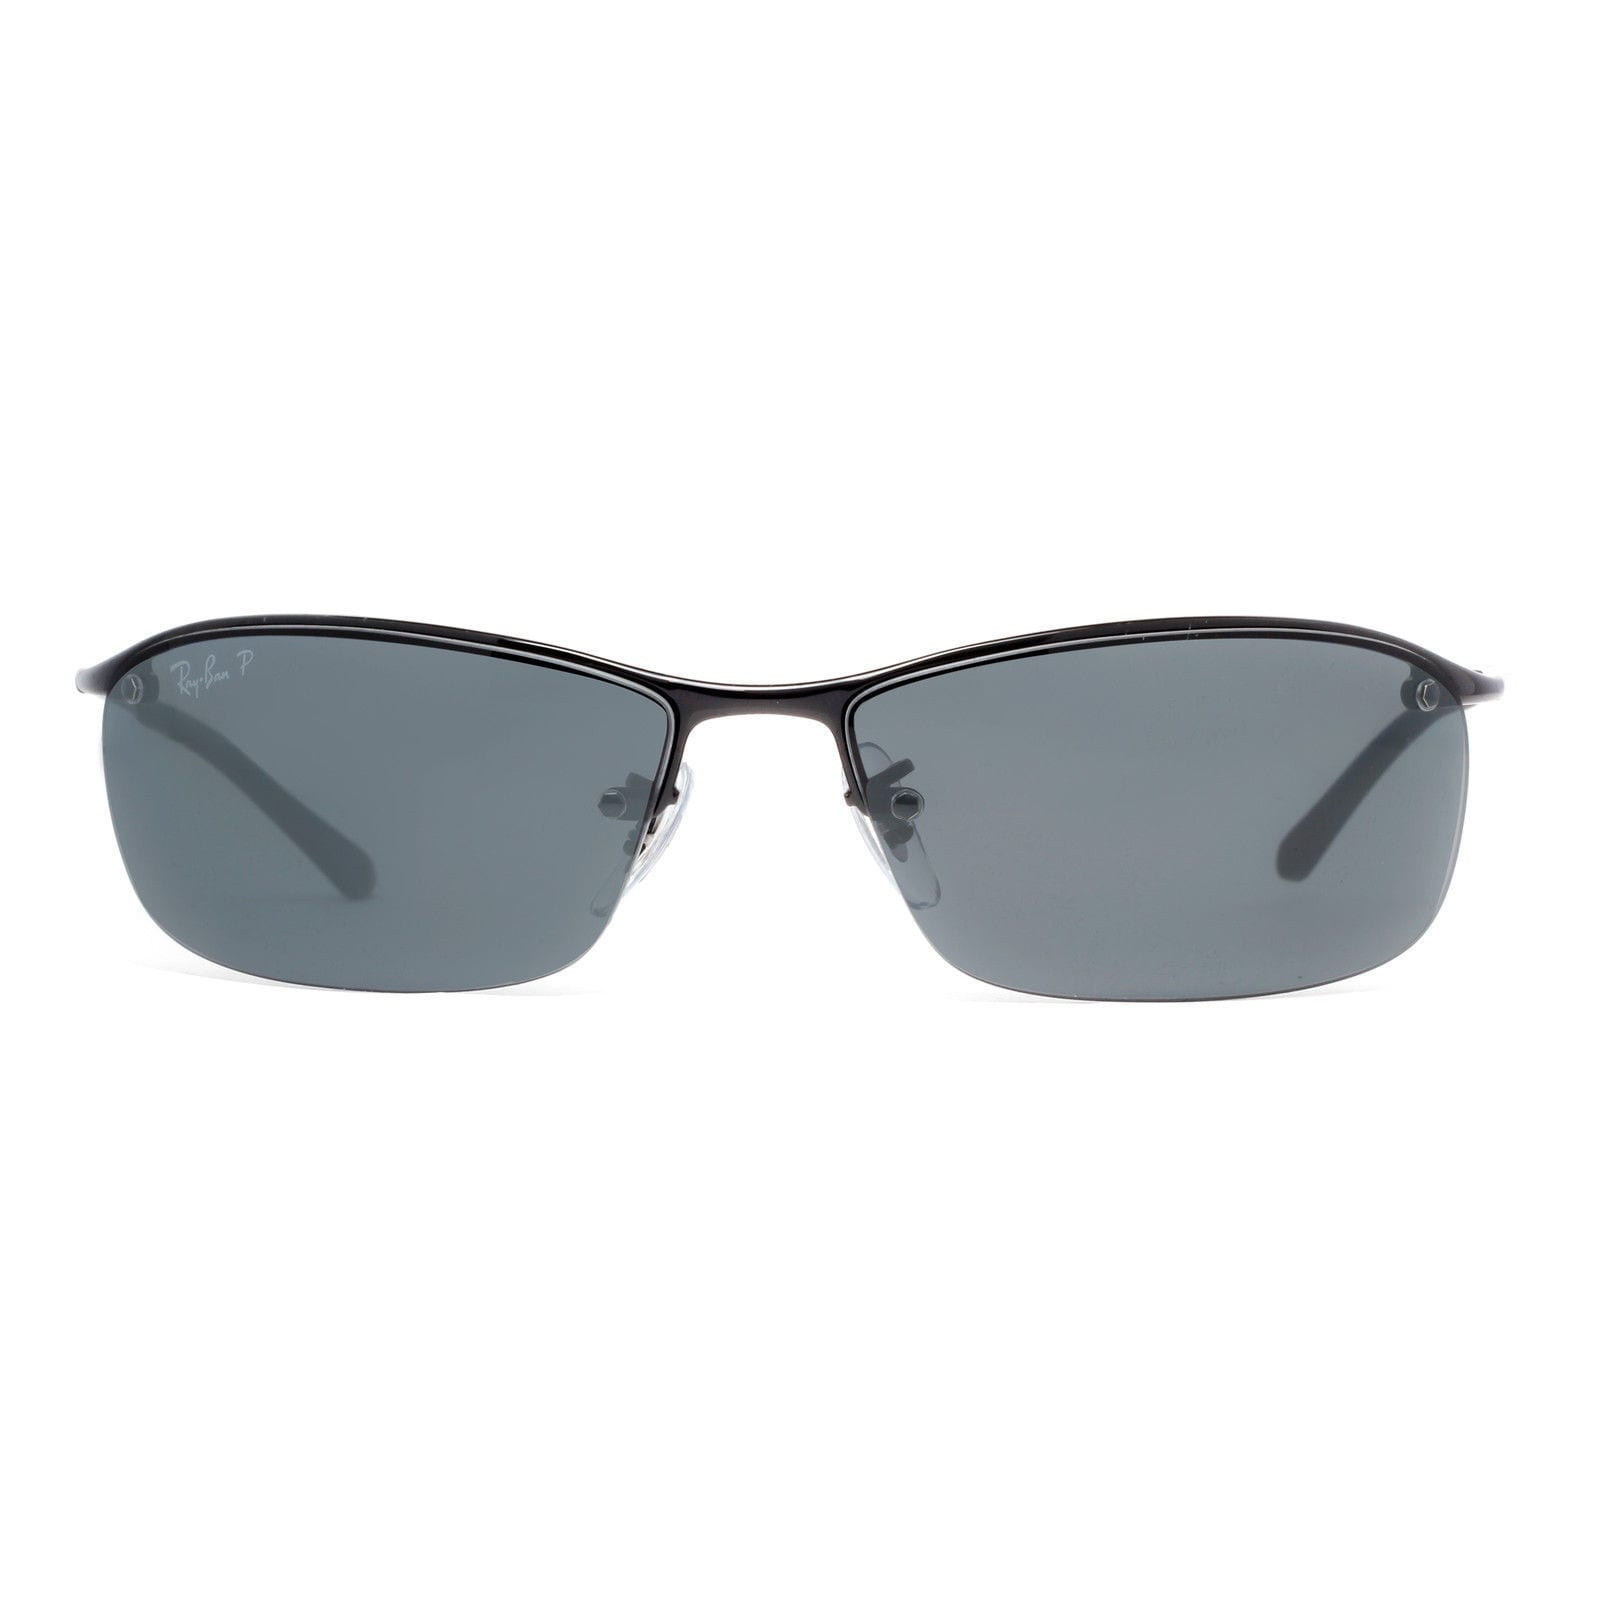 a35c3f8bb3ffd6 Shop Ray-Ban RB3183 002 81 Men s Black Frame Polarized Grey Gradient 63mm  Lens Sunglasses - Free Shipping Today - Overstock - 14331186